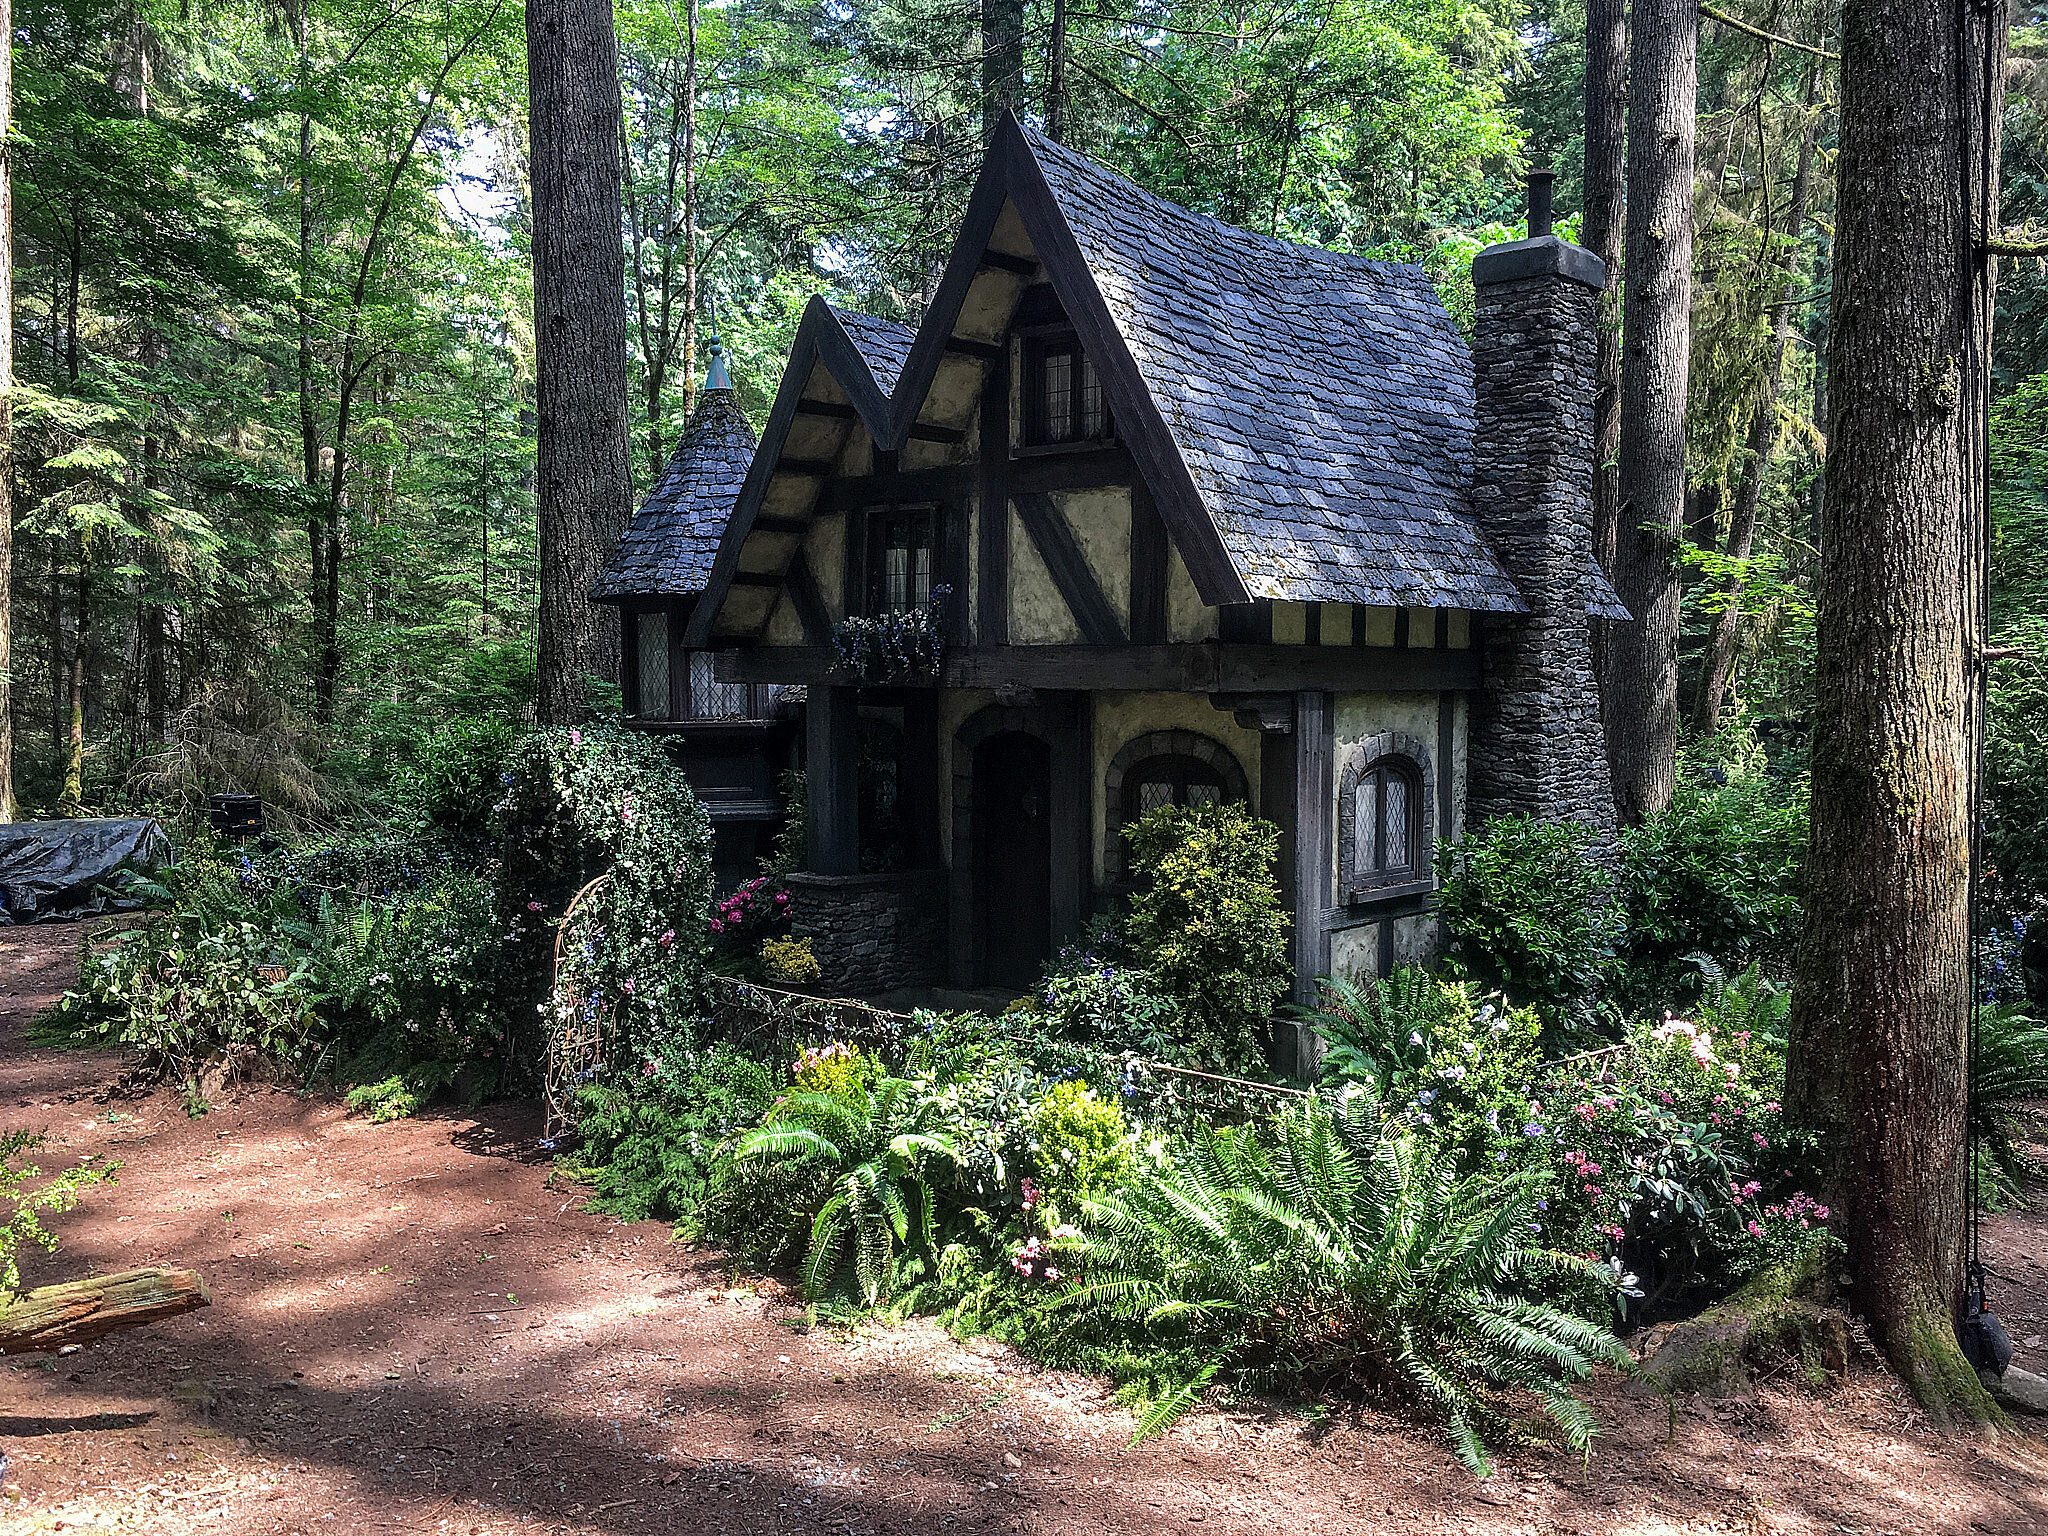 Our anti-hero Audrey (Sarah Jeffrey) retreats to this remote fairy cottage that was once the secret refuge of her teen mother, Sleeping Beauty. We built this humble Bavarian-style cottage in a practical forest.